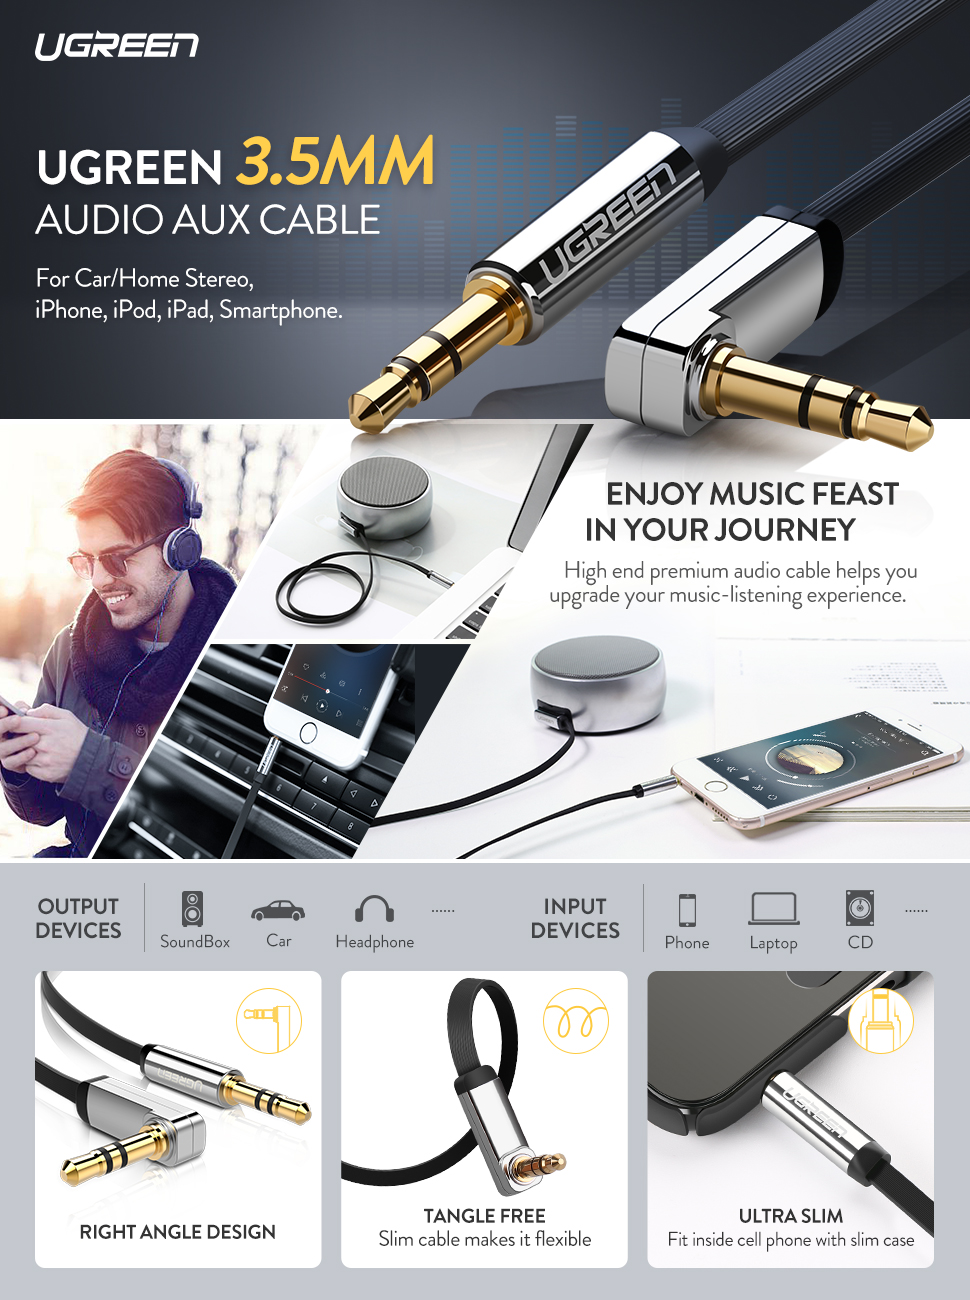 iPods Home//Car Stereos and More. 3.5mm Aux Cable 1.5ft,3.5mm Stereo Audio Cable Extension Male to Male Nylon Braided 1.5ft//0.5m Tangle-Free AUX Cable for Headphones iPads iPhones